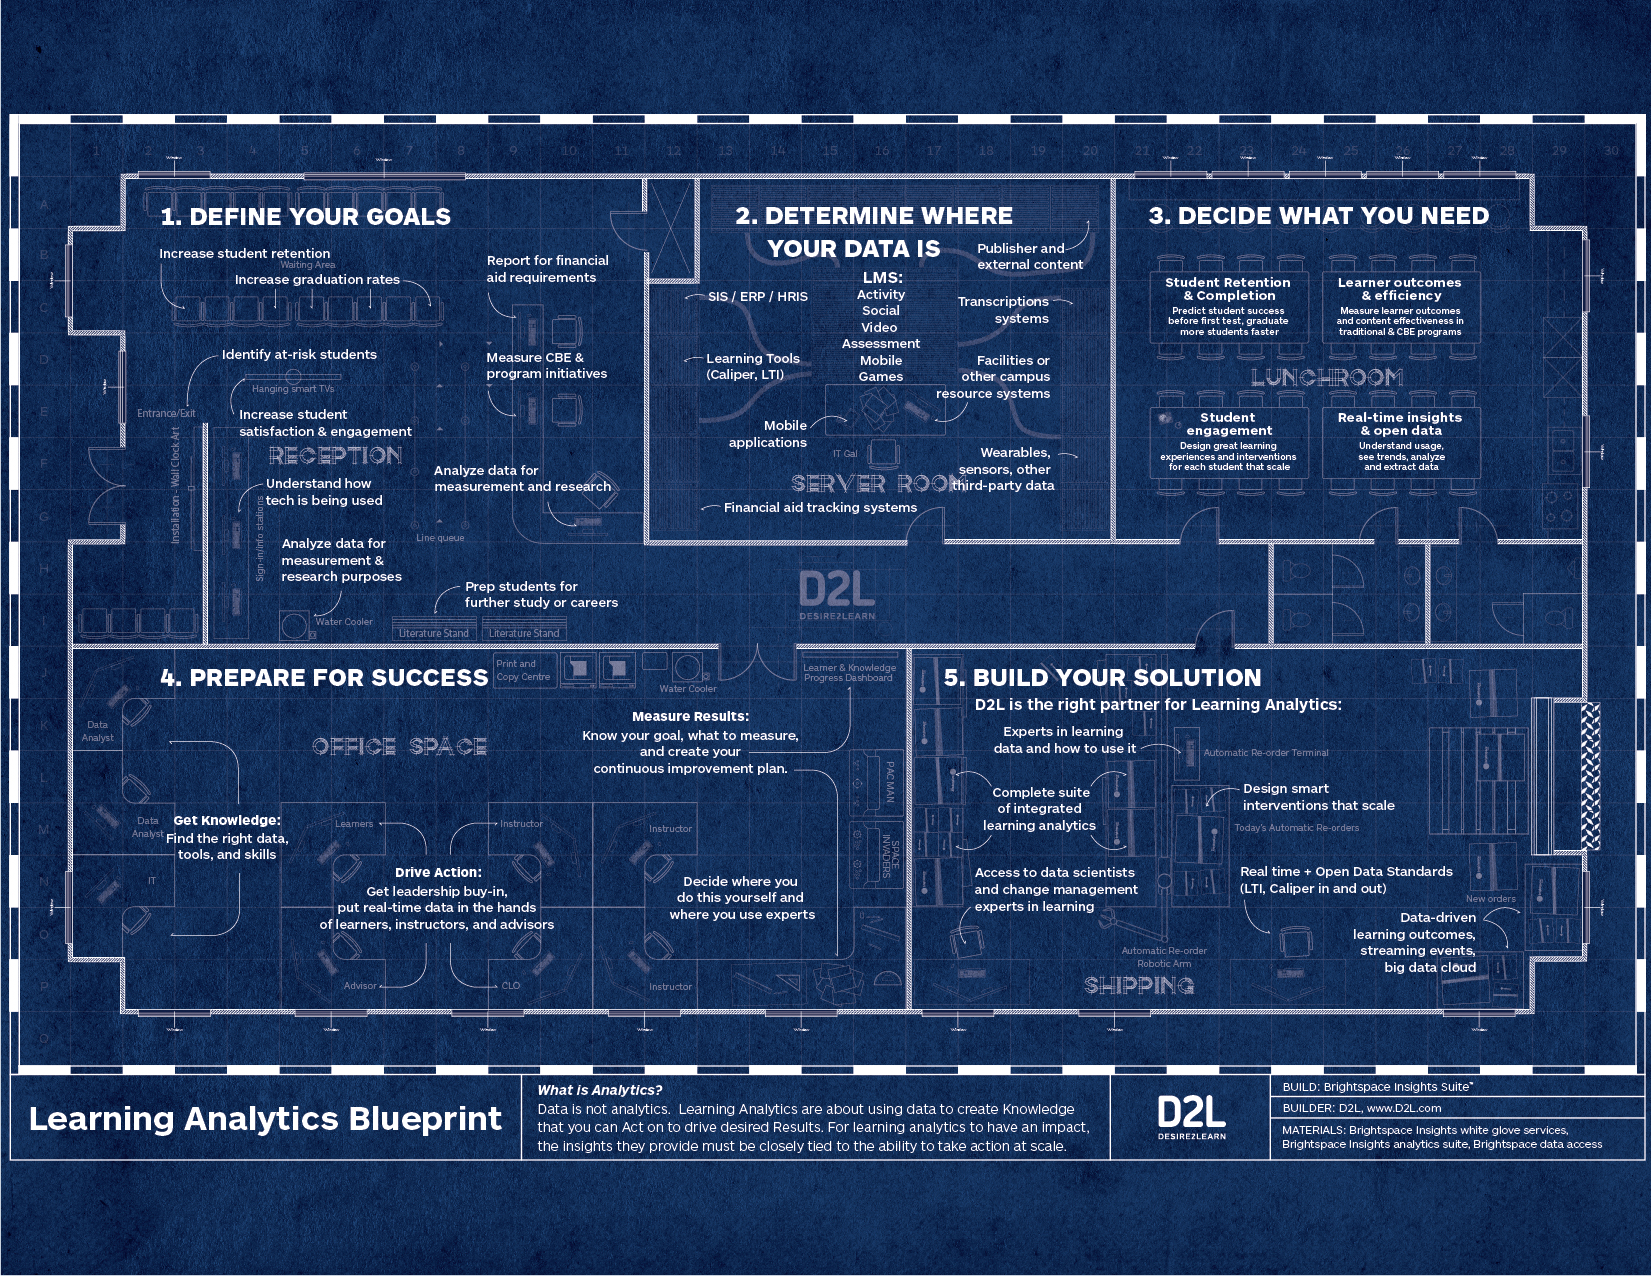 Learning Analytics Guide D2l